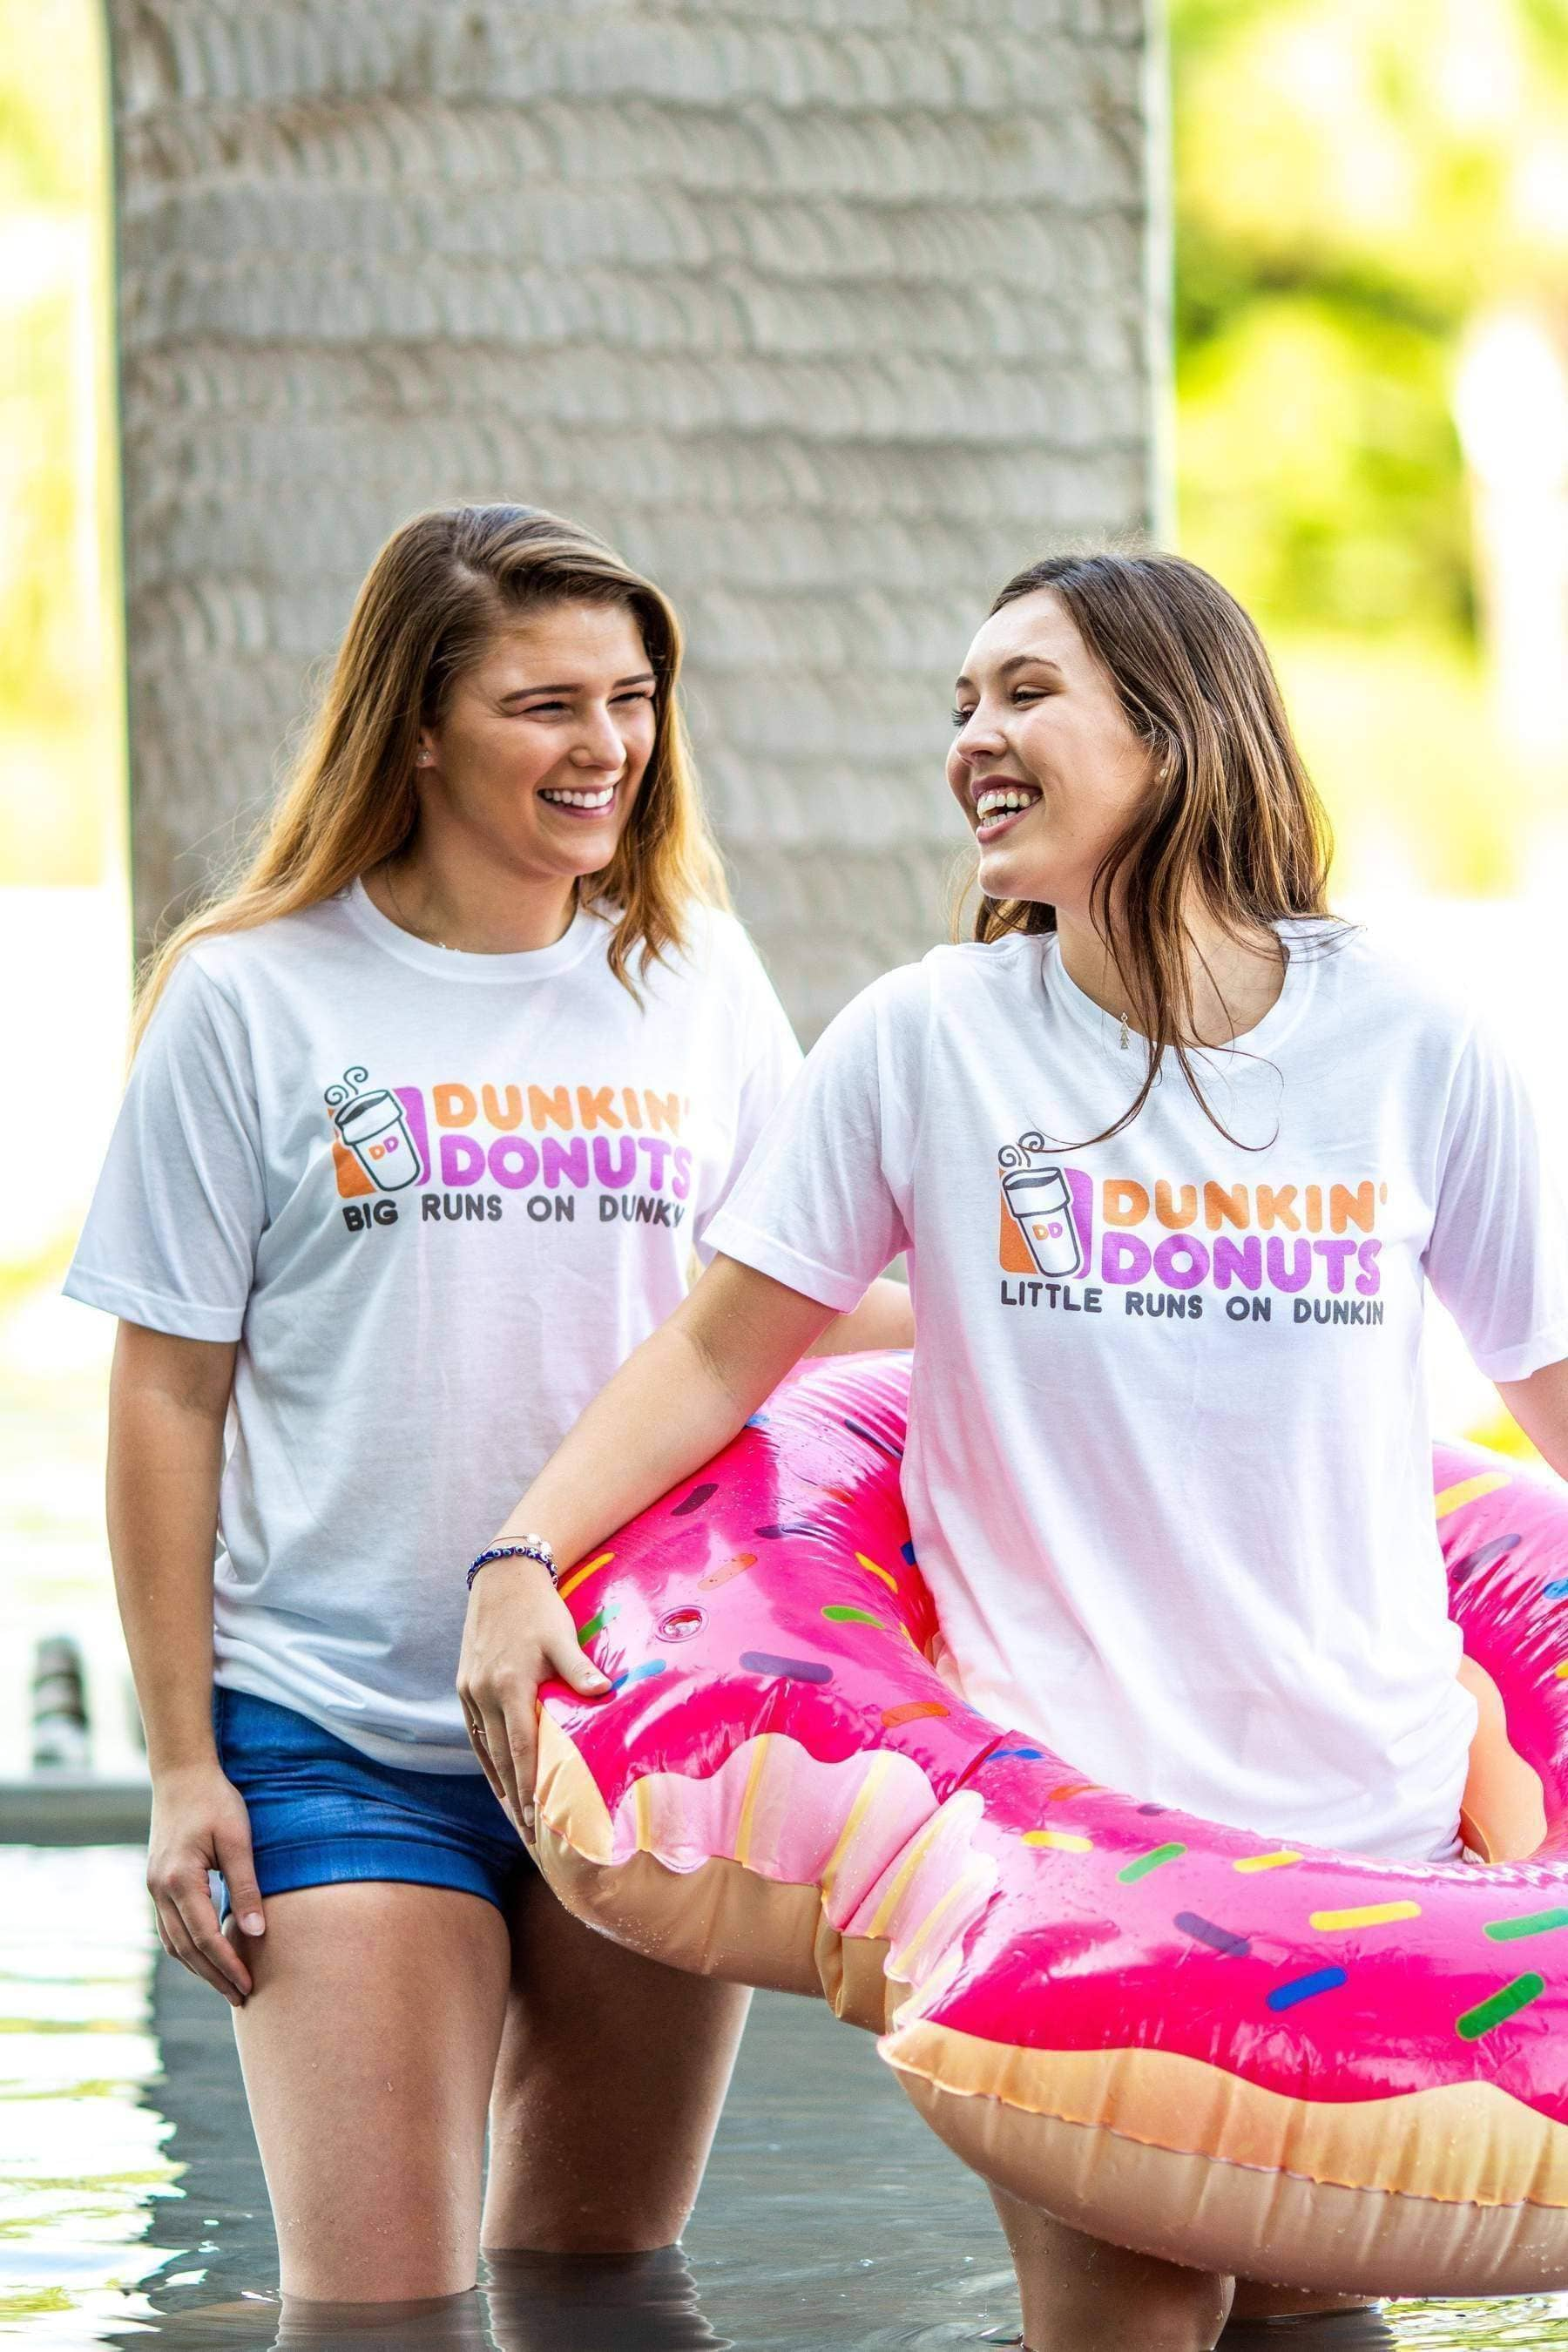 Big Little Runs on Dunkin' Design